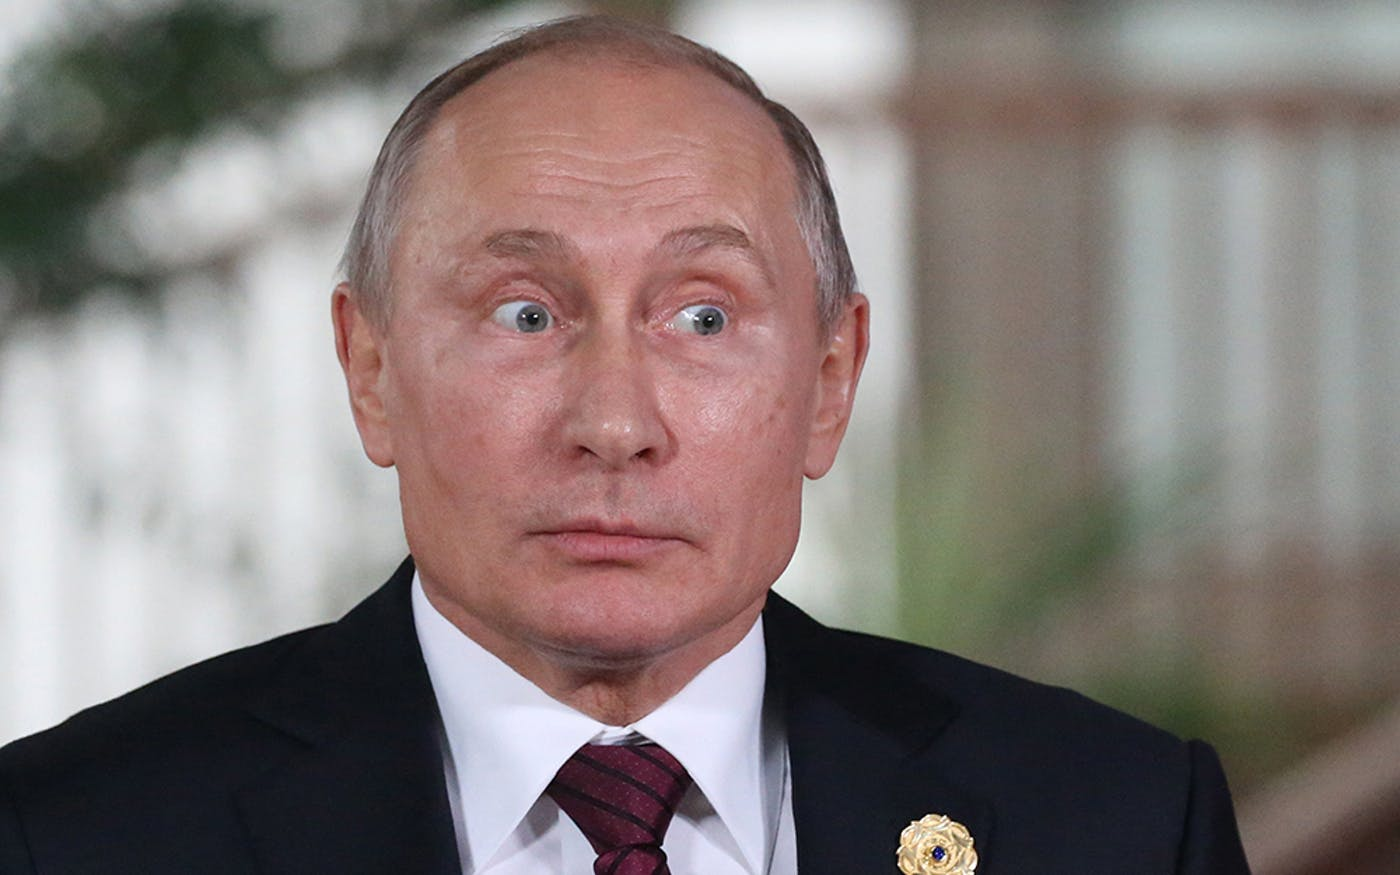 Vladimir Putin The Face Of Male Plastic Surgery Topic